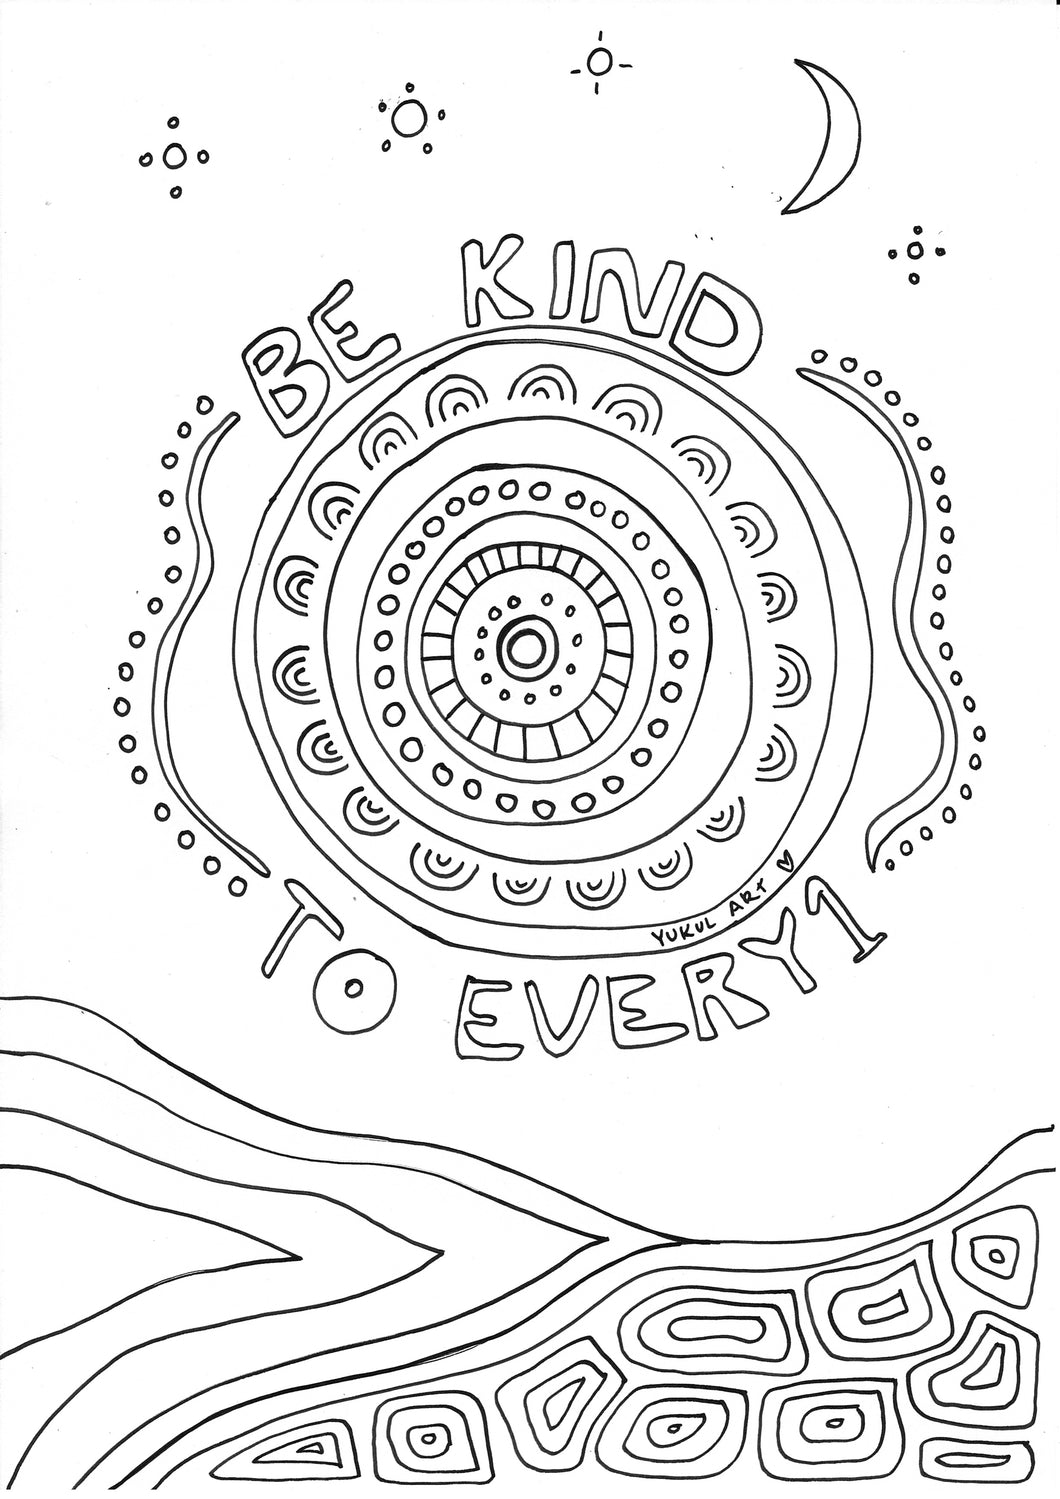 Be kind to every1 colouring in page (FREEBIE)